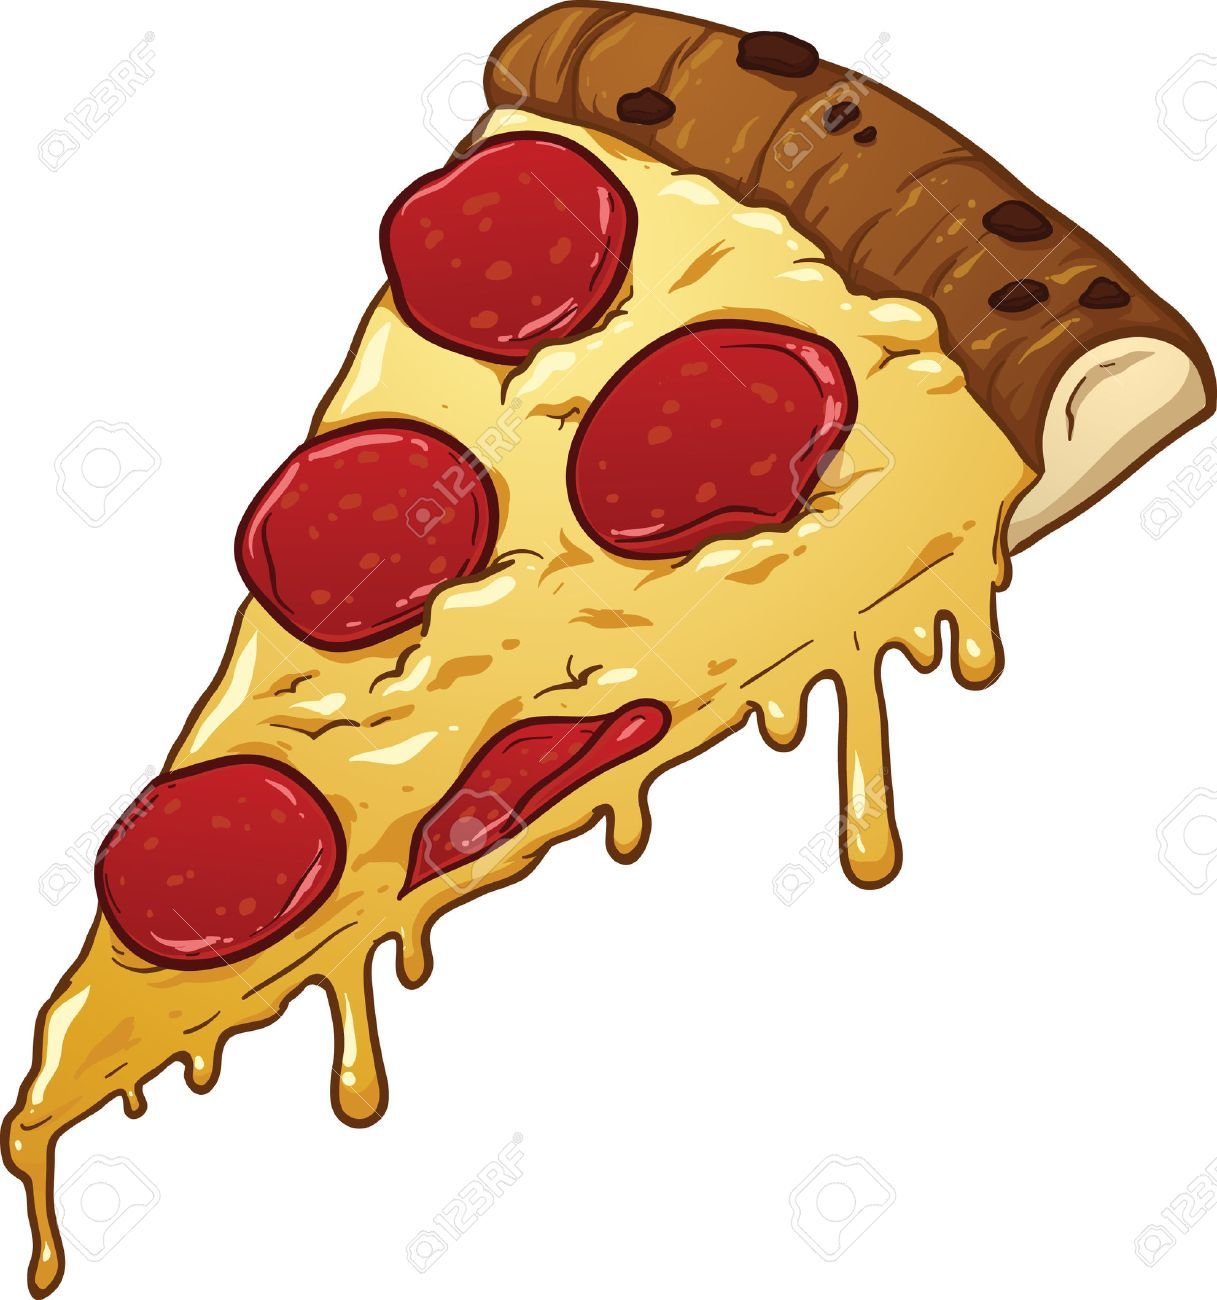 Slice of pizza clipart 3 » Clipart Portal.